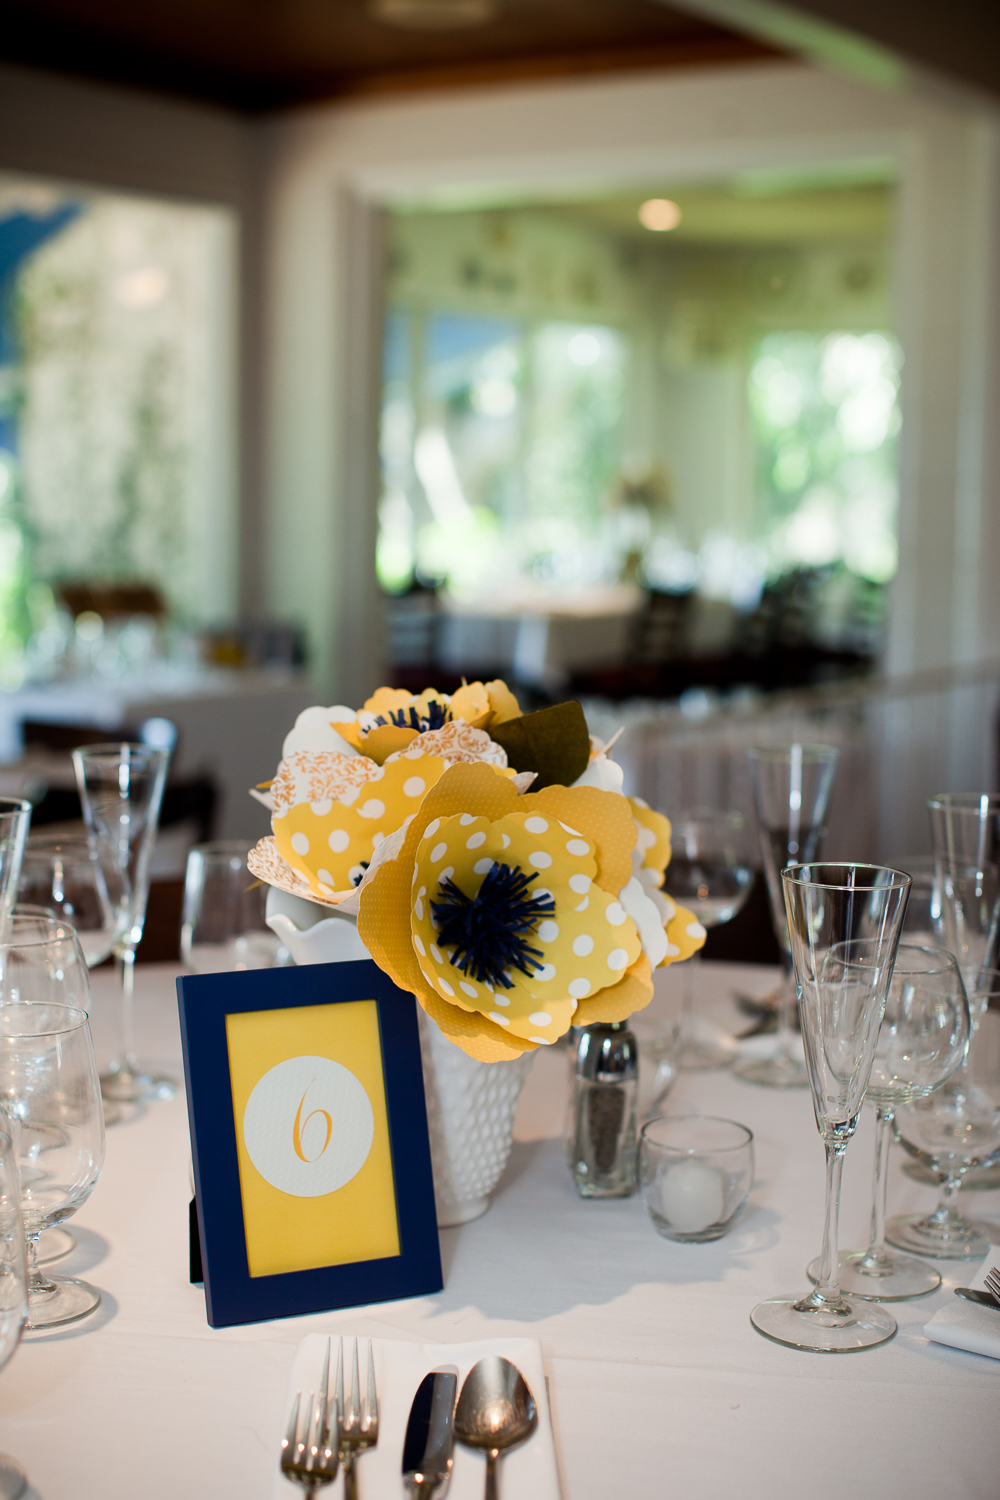 yellow-and-navy-anthropologie-style-wedding-34.jpg